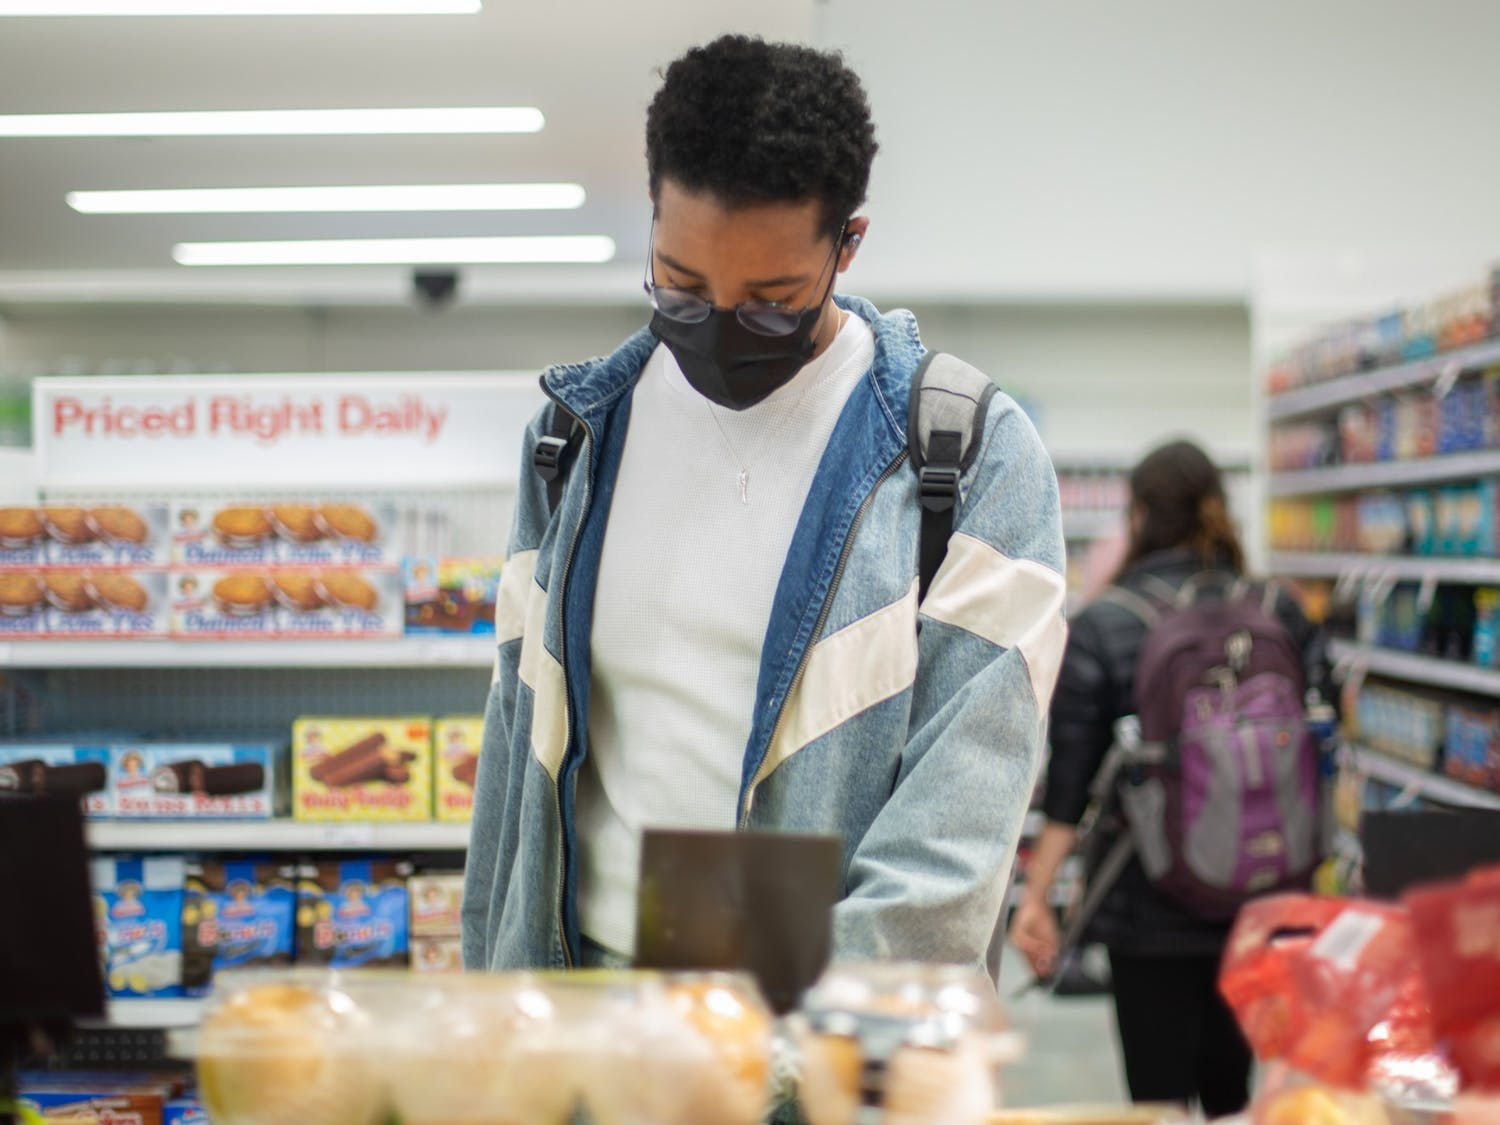 First-year computer science major Kendall Howard shops for food at the Target on Franklin Street on Friday, March 19, 2021.